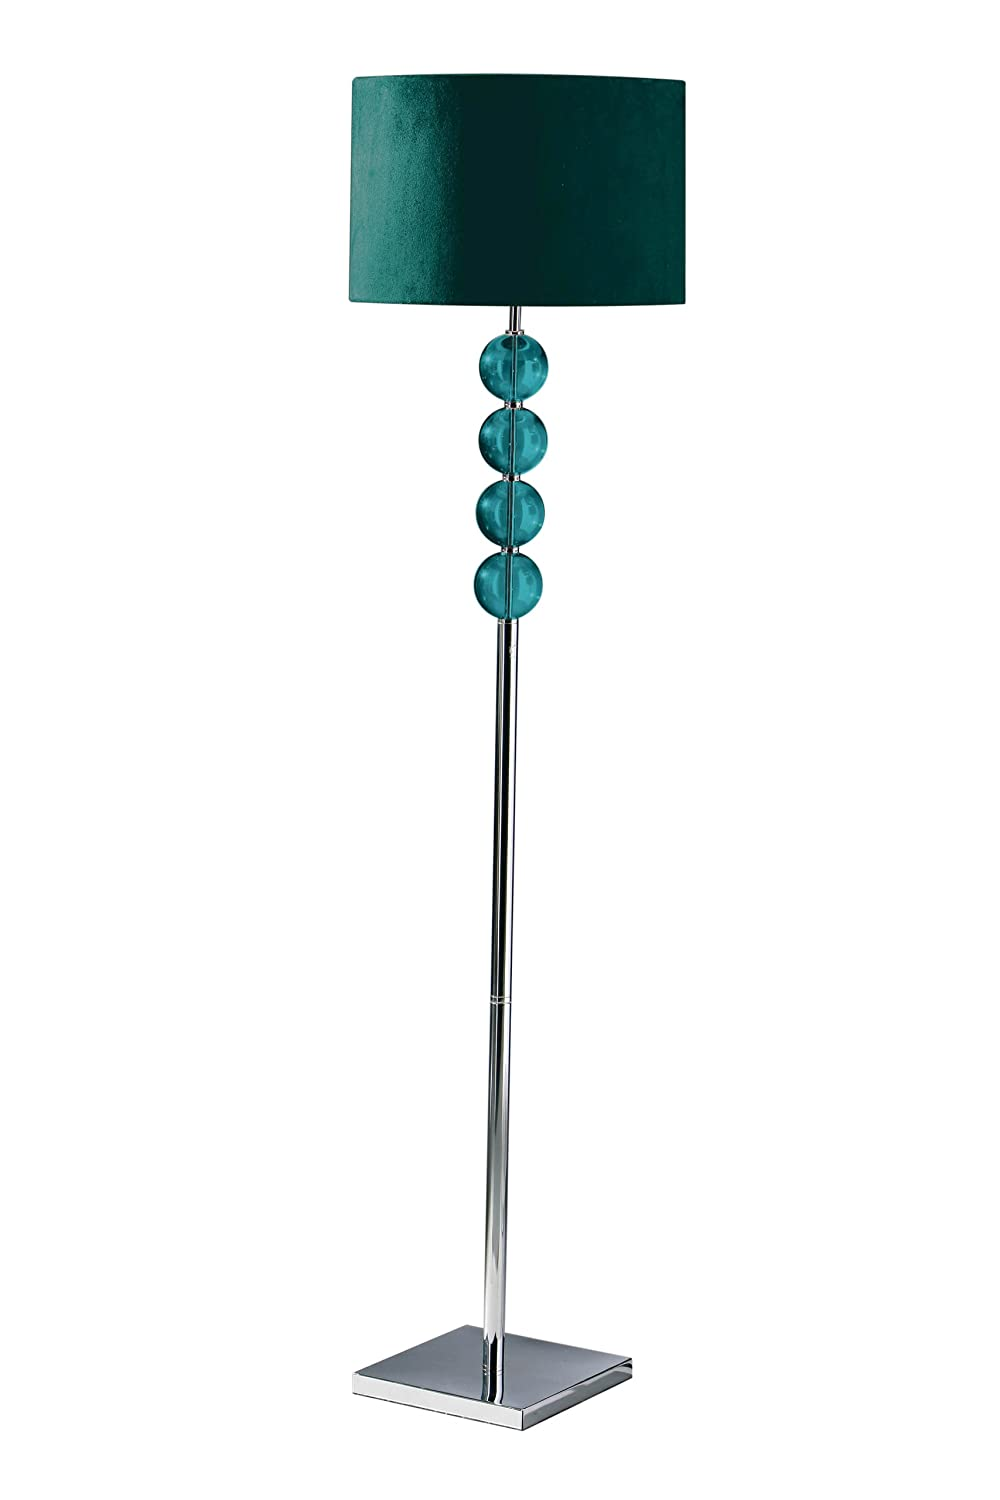 Premier Housewares Mistro Teal Floor Lamp With 4 Glass Balls Chrome Base  And Faux Suede Shade: Amazon.co.uk: Lighting